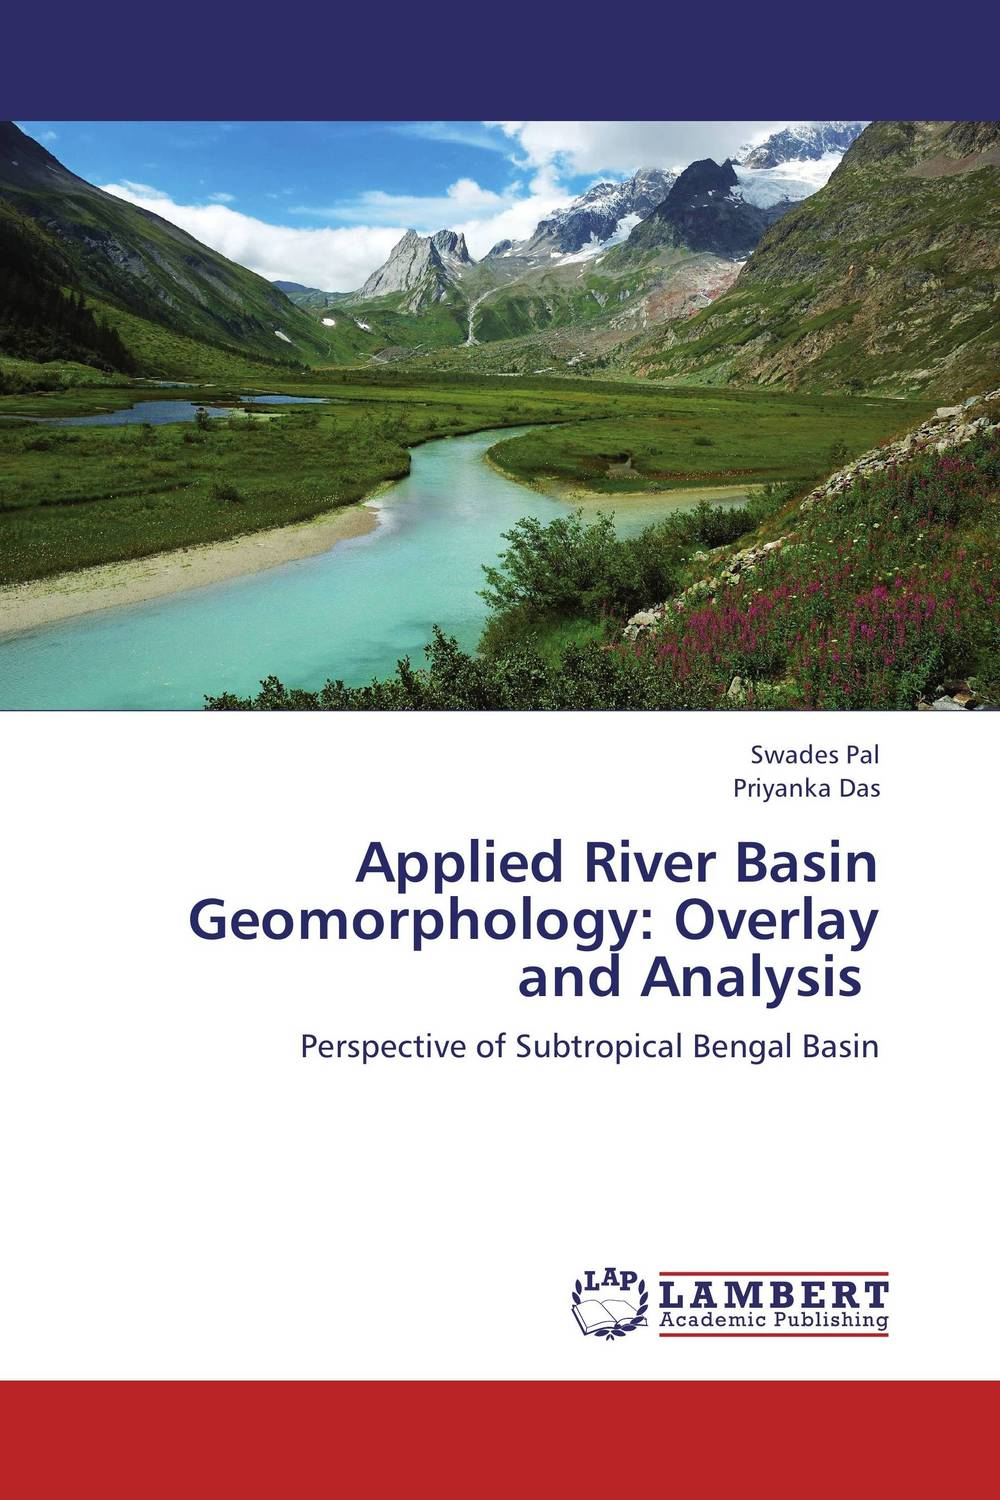 Applied River Basin Geomorphology: Overlay and  Analysis pastoralism and agriculture pennar basin india